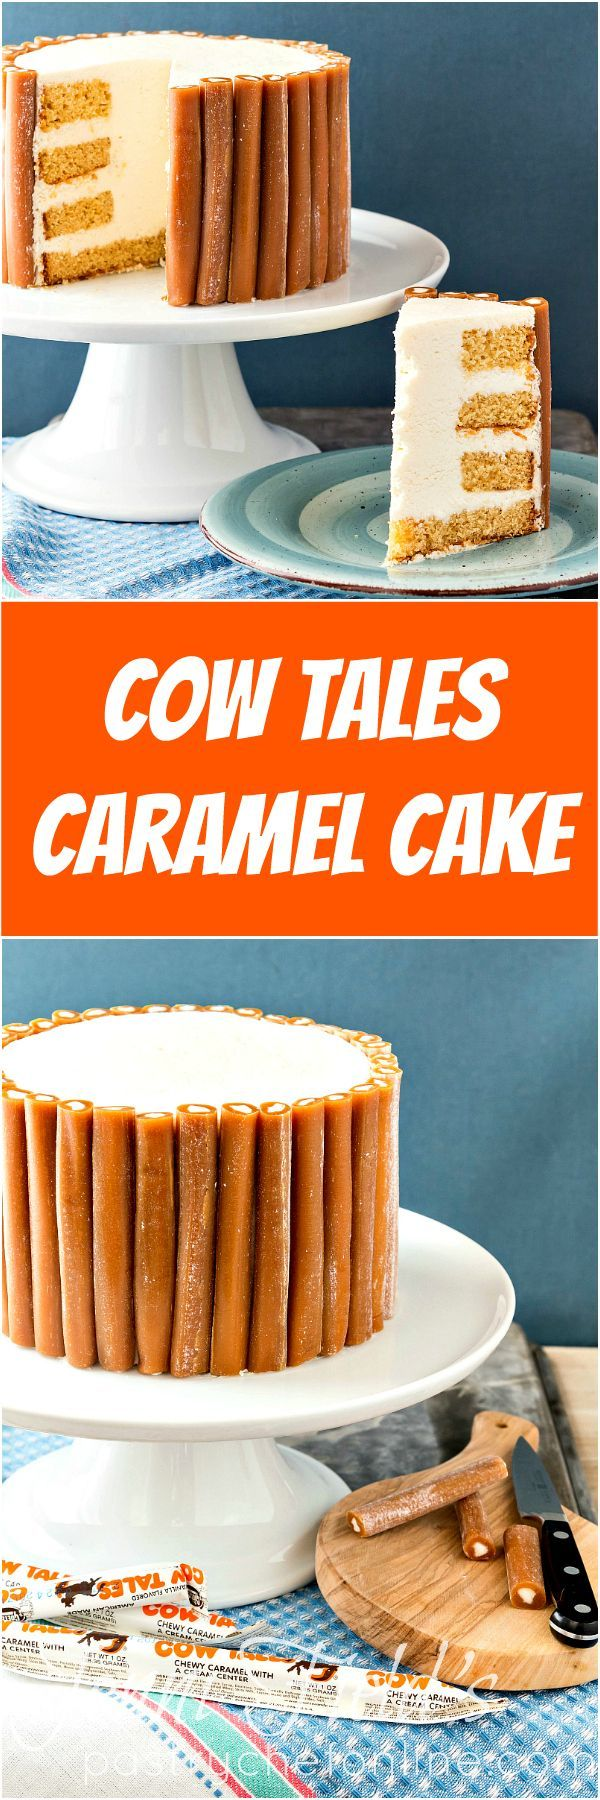 This Cow Tales® Caramel Cake is pure decadence. Four layers of caramel cake with cream between the layers and a core of frosting. Like one big Cow Tales candy surrounded by a bunch of little Cow Tales® candies. Enjoy in small pieces!   http://pastrychefonline.com